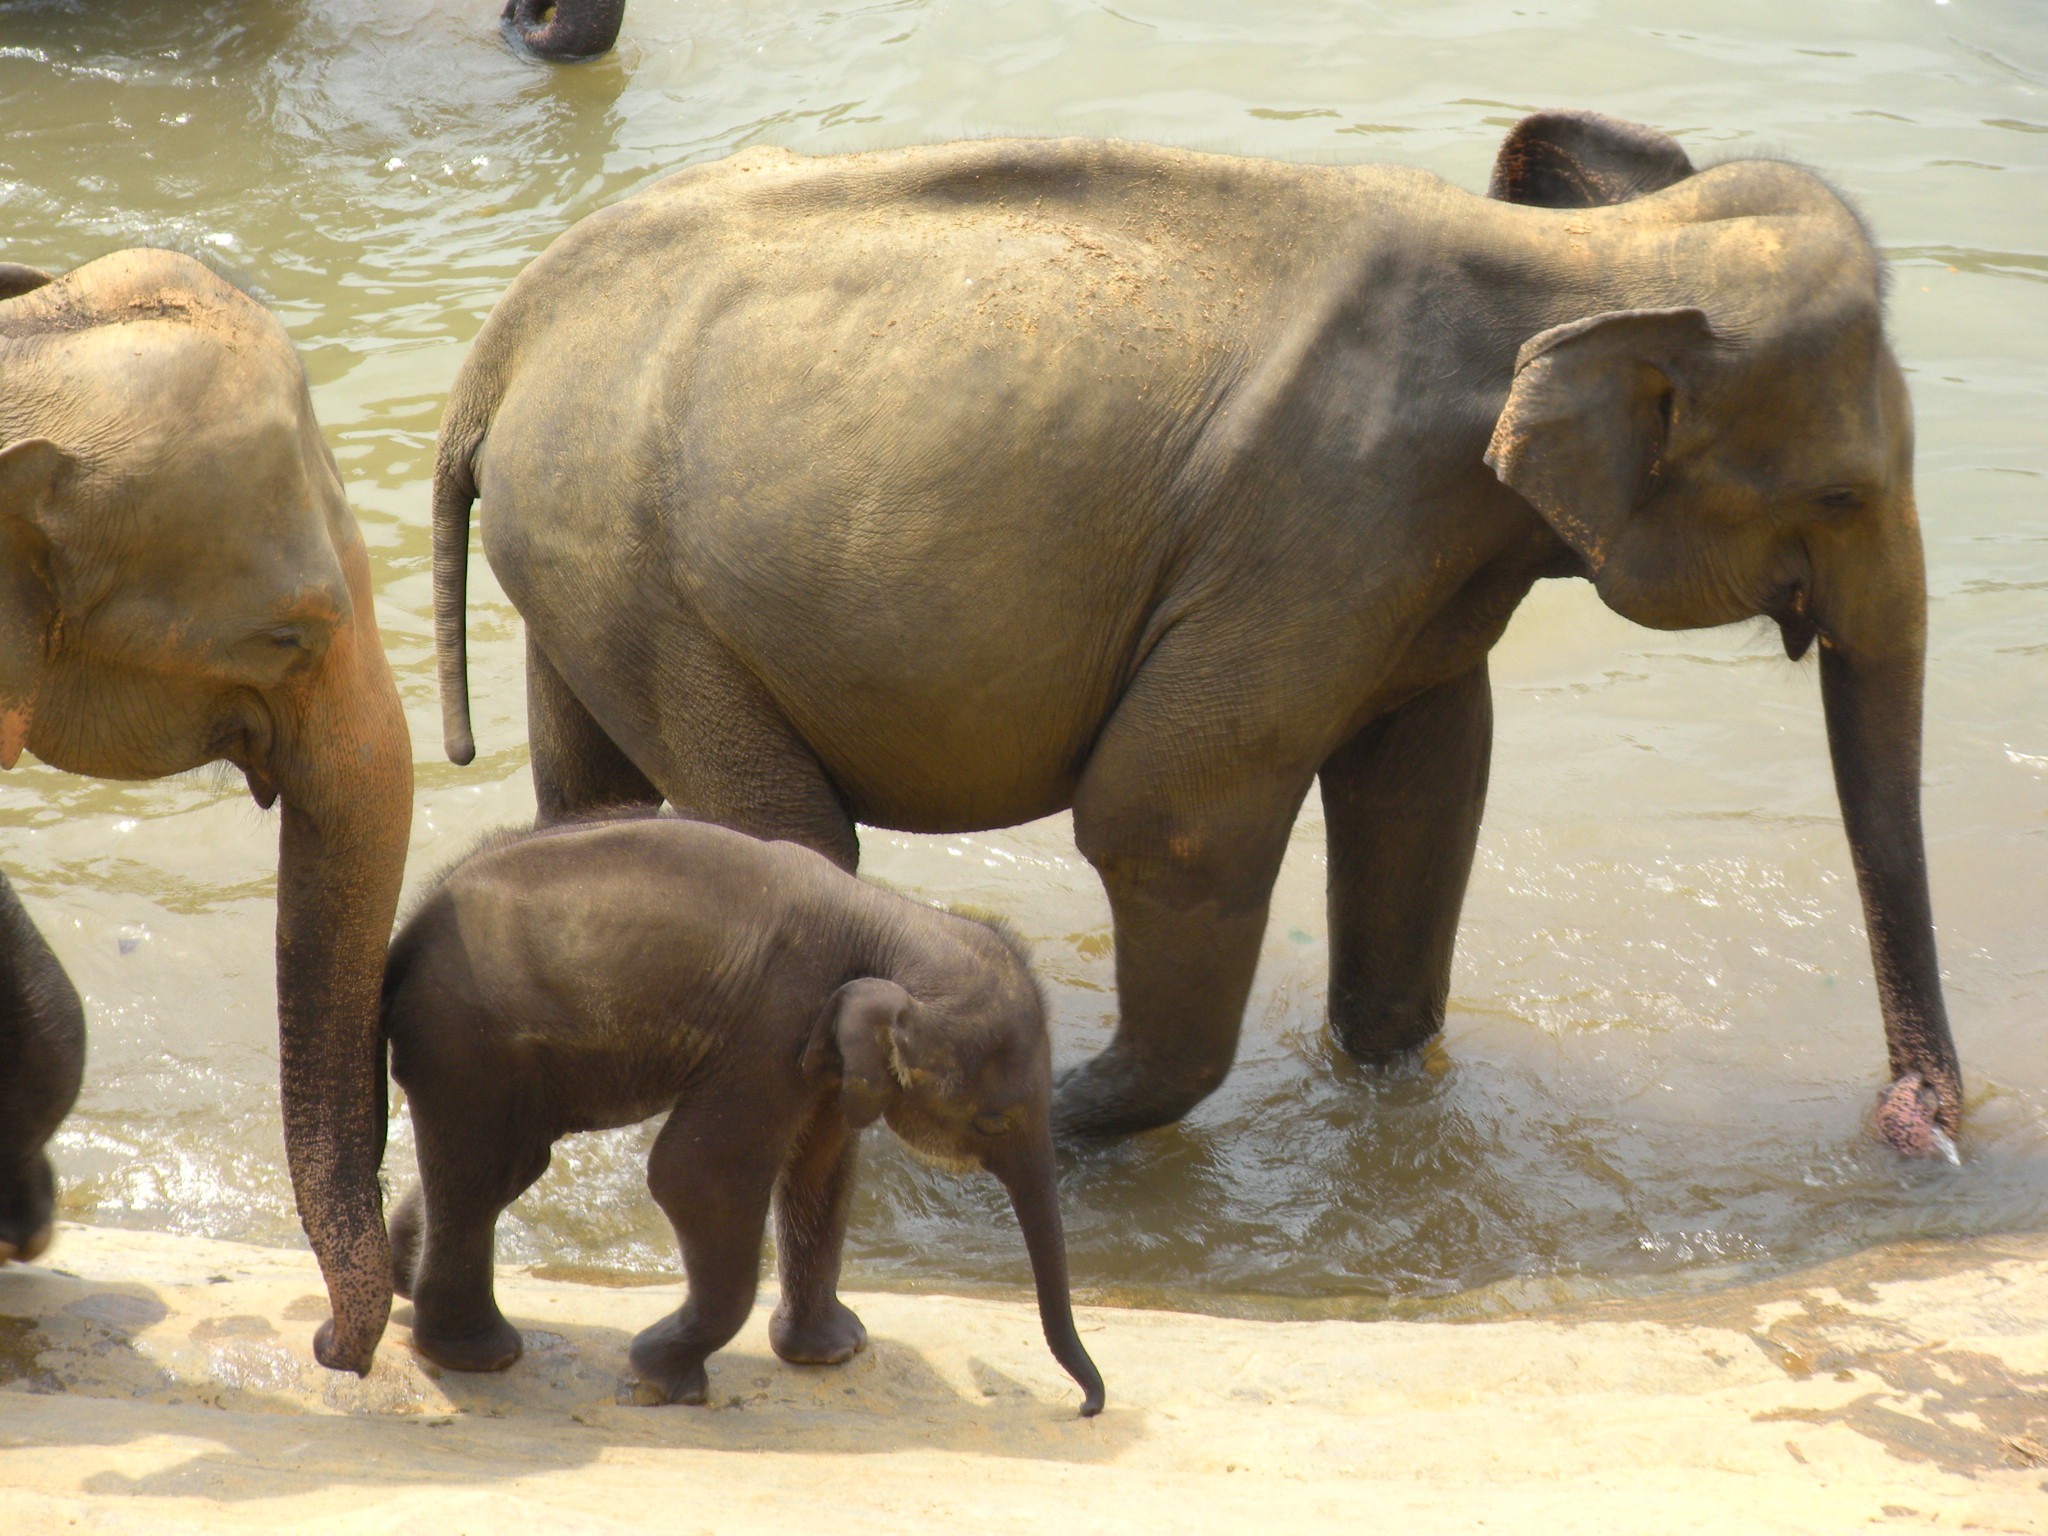 In Sri Lanka at Pinnawala elephant orphanage. That baby elephant was playing and going under water using its trunk like a submarine periscope to breathe. Ecology and wild animal care is a big area of focus in Sri Lanka